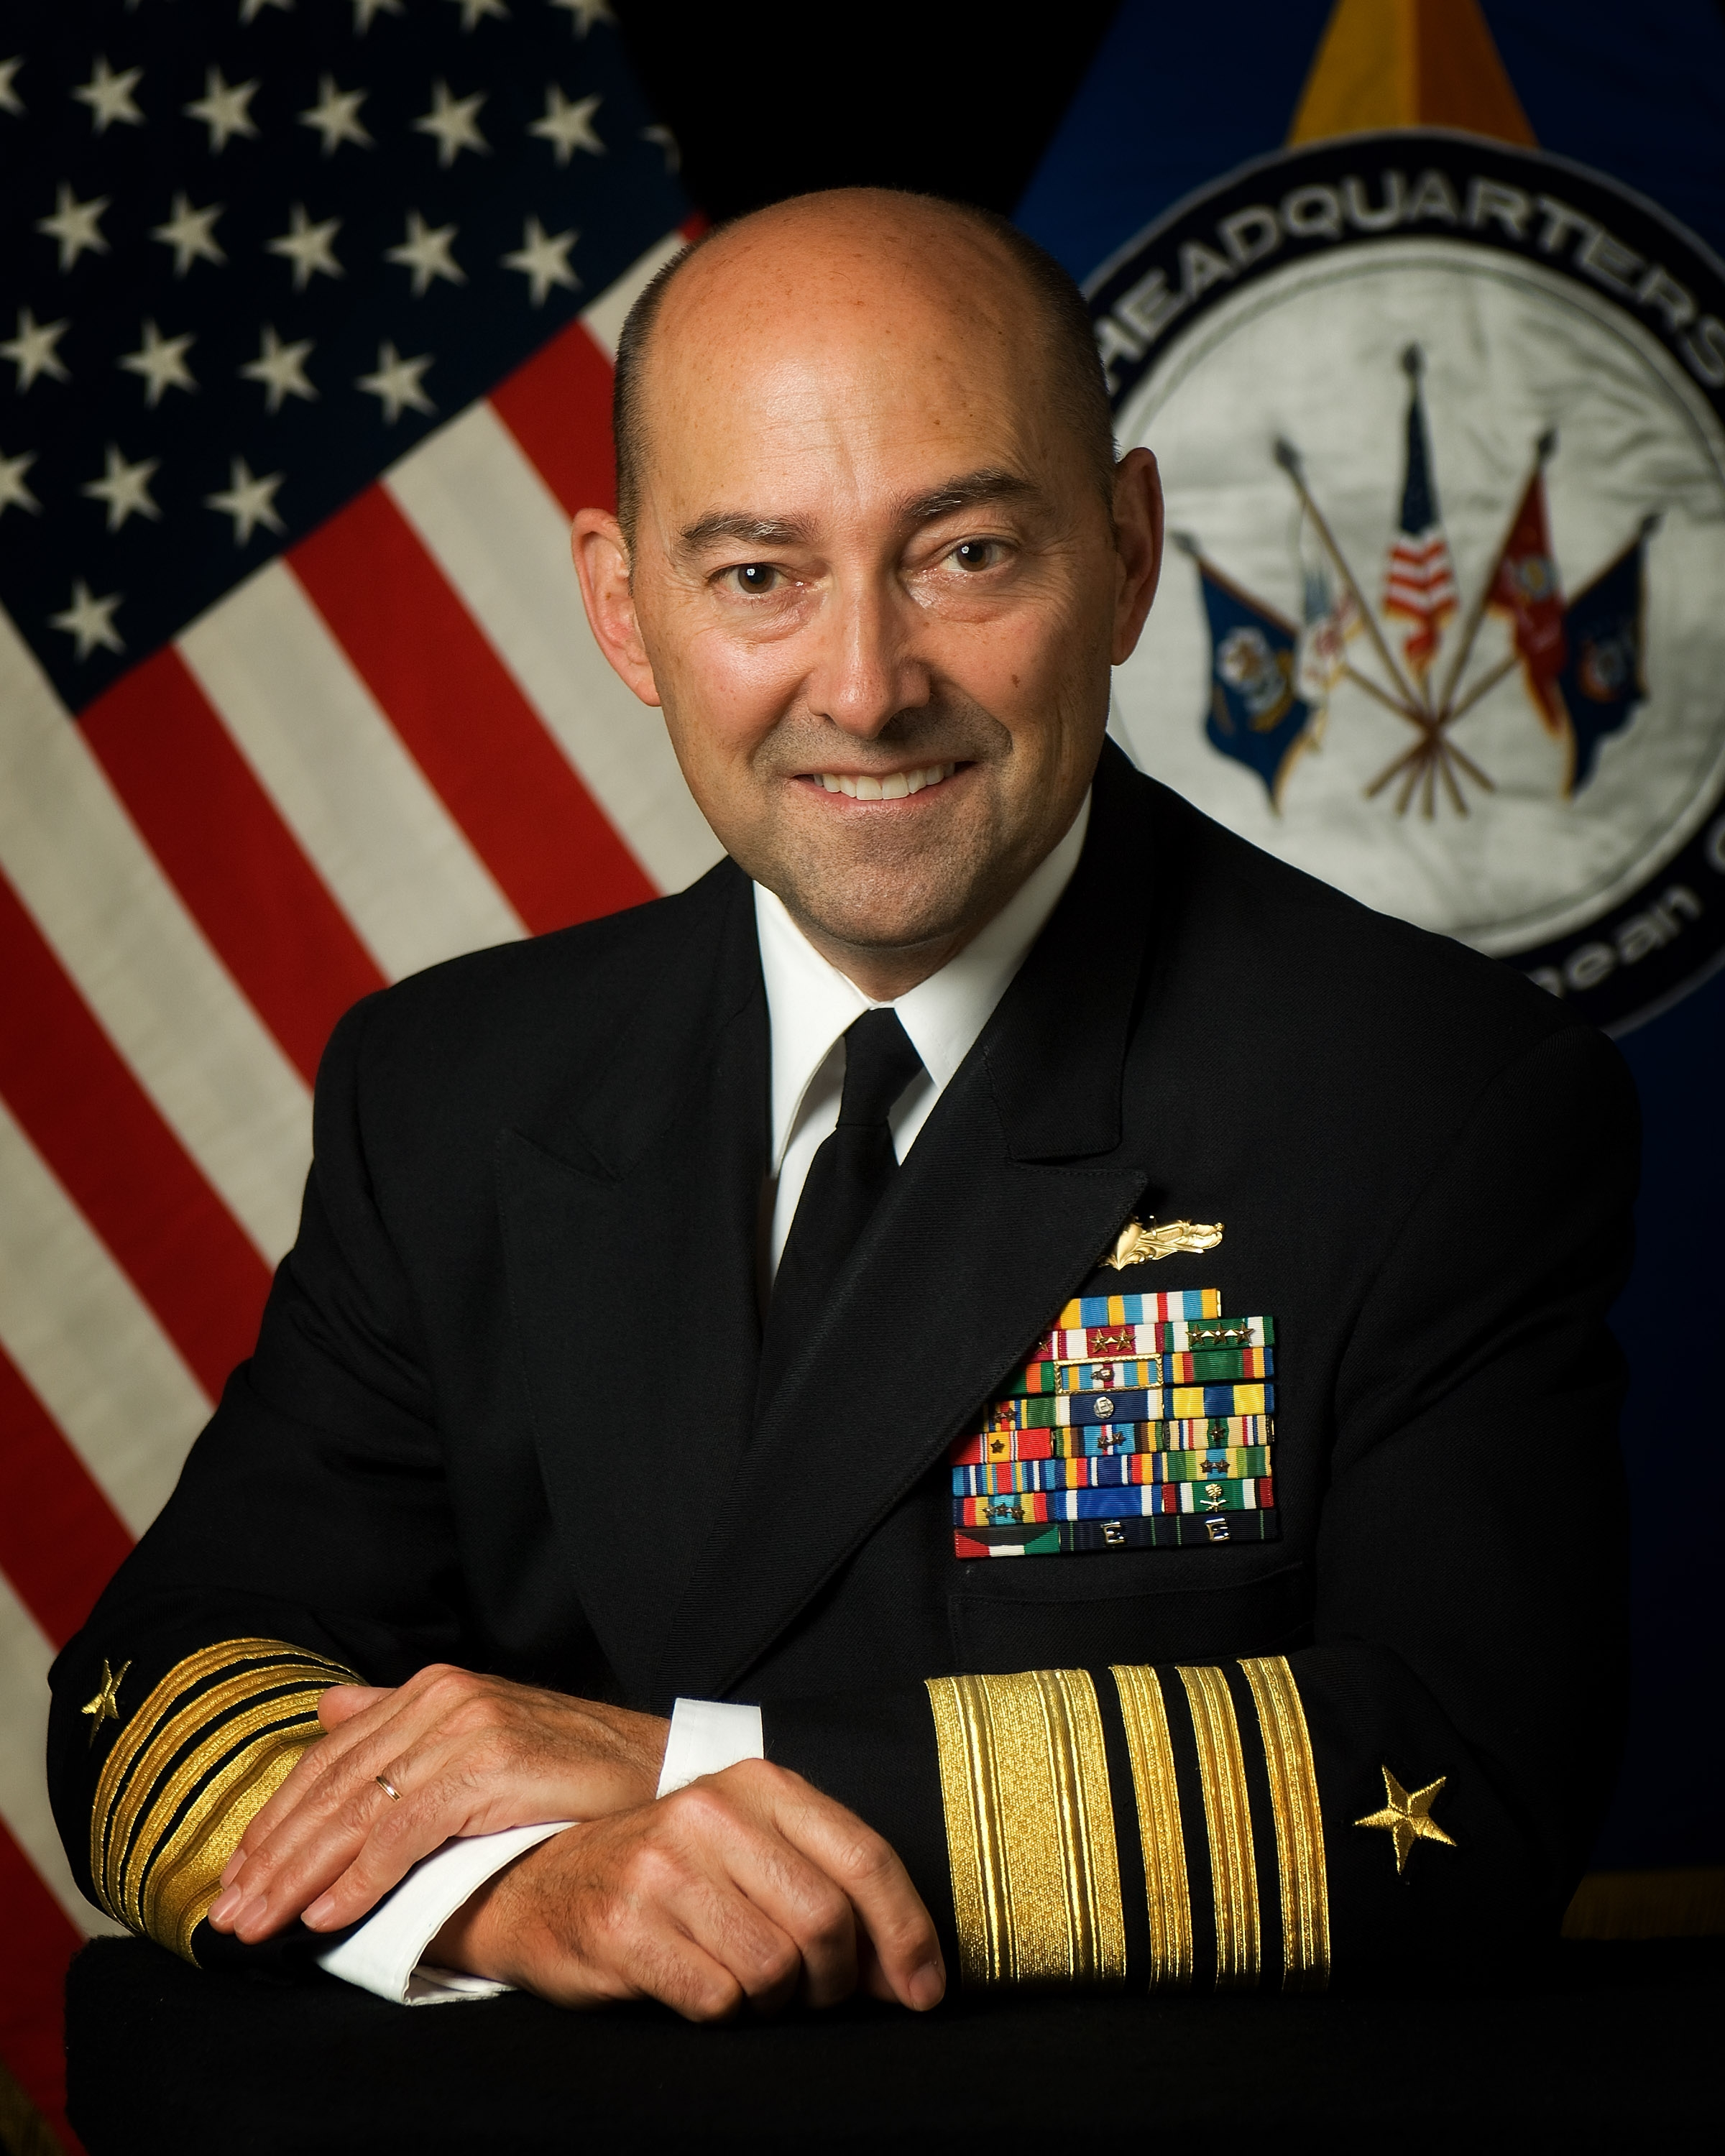 The Future of Warfare: Naval Power, Cyber Force, and the Next World War with Admiral (Ret.) James Stavridis